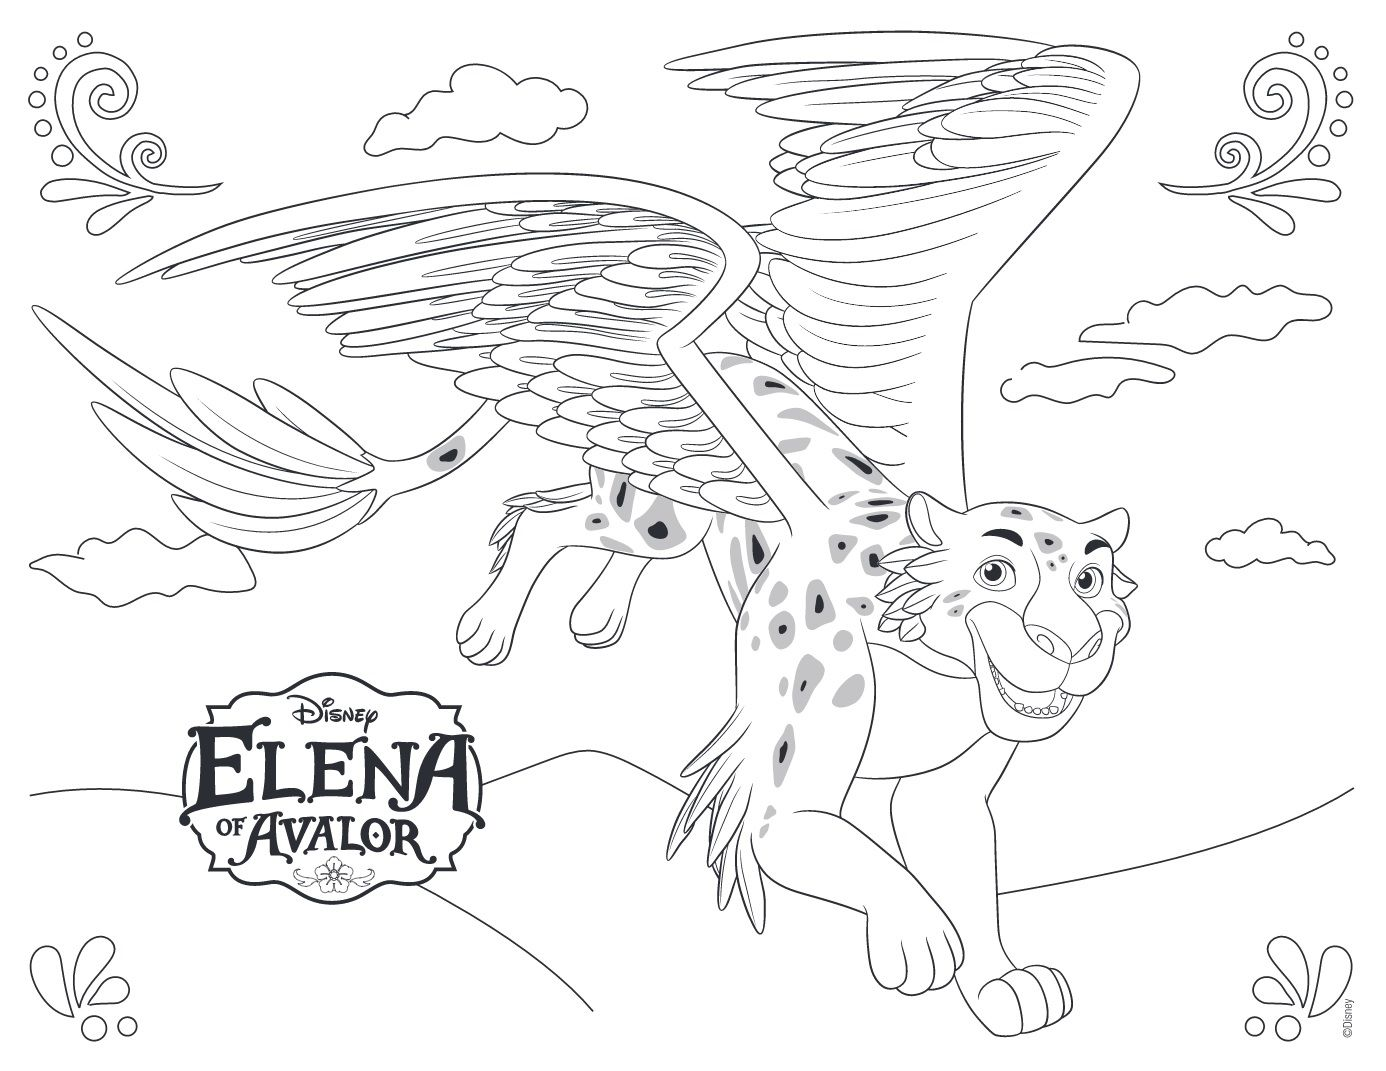 Elena of avalor disney coloring pages miejsca do for Elena of avalor coloring pages